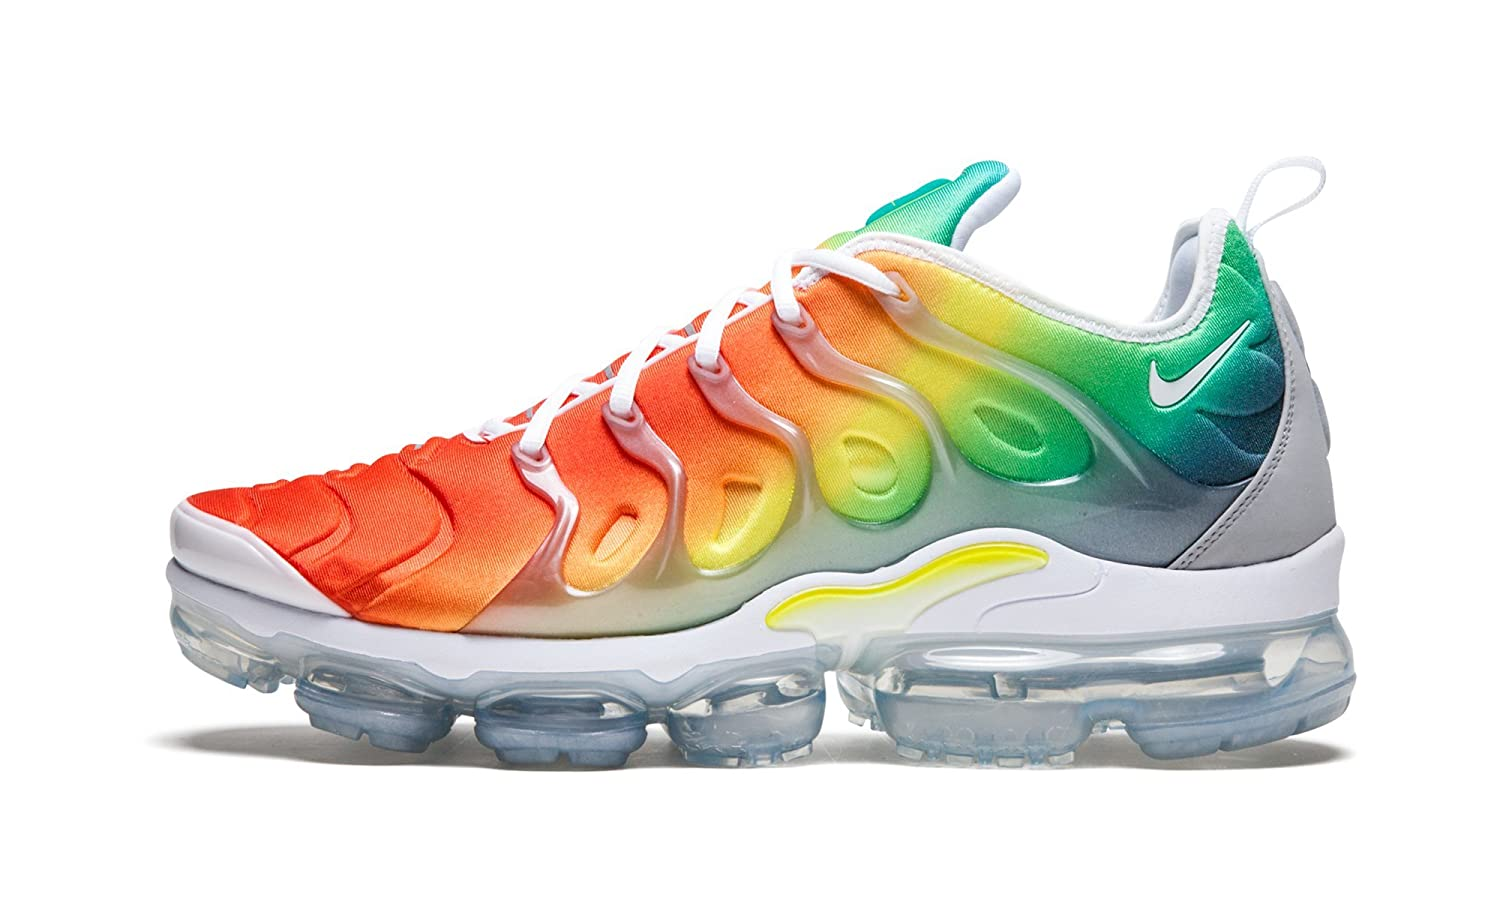 Nike Air Vapormax Plus (WhiteWhite Neptune Green, 12)